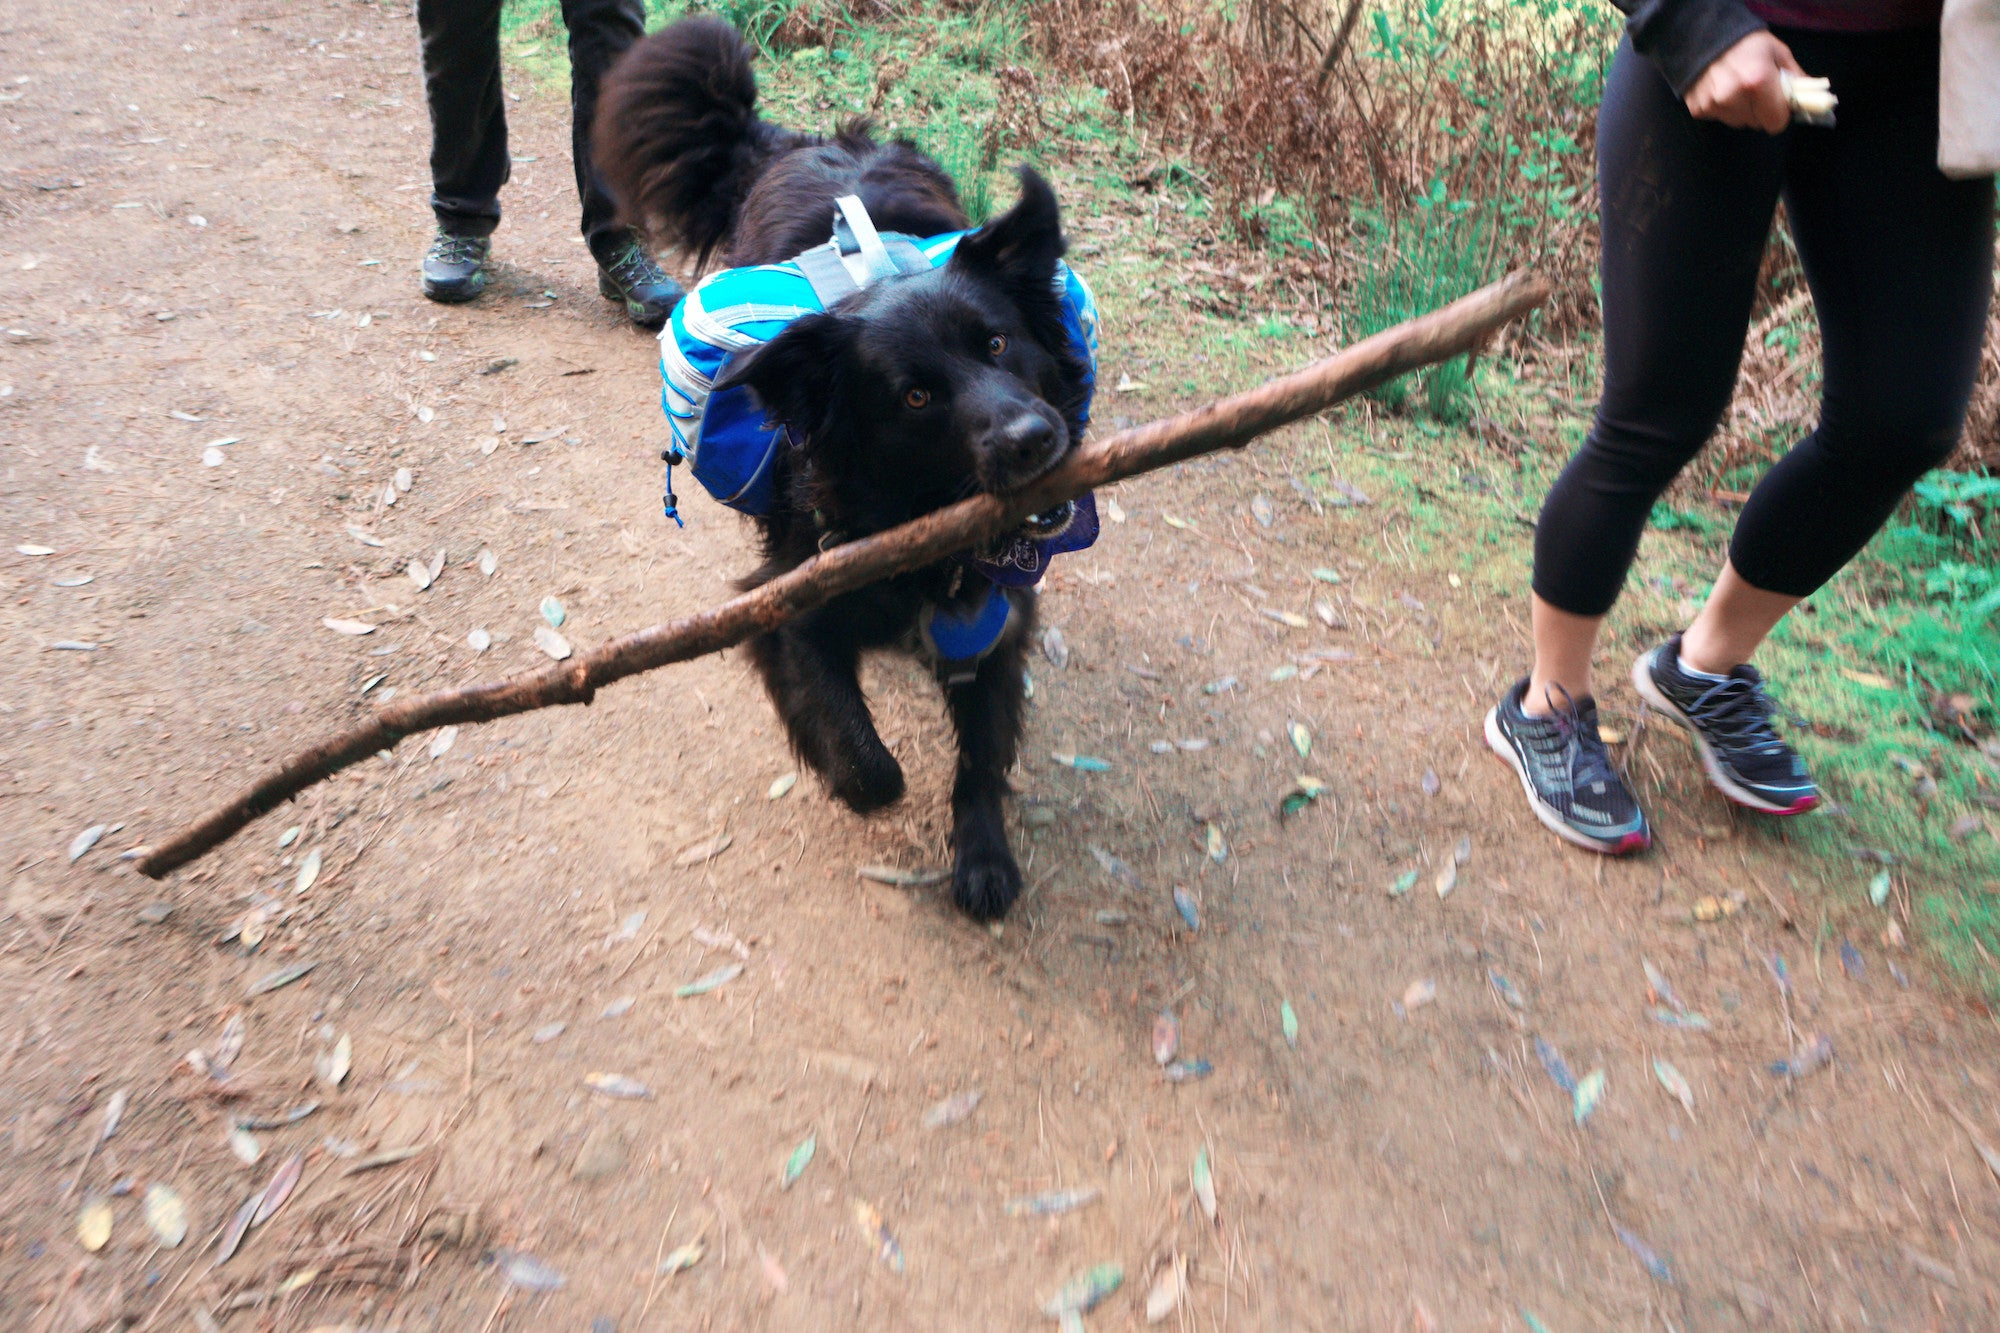 The 6 most important Items to bring on a long dog hike